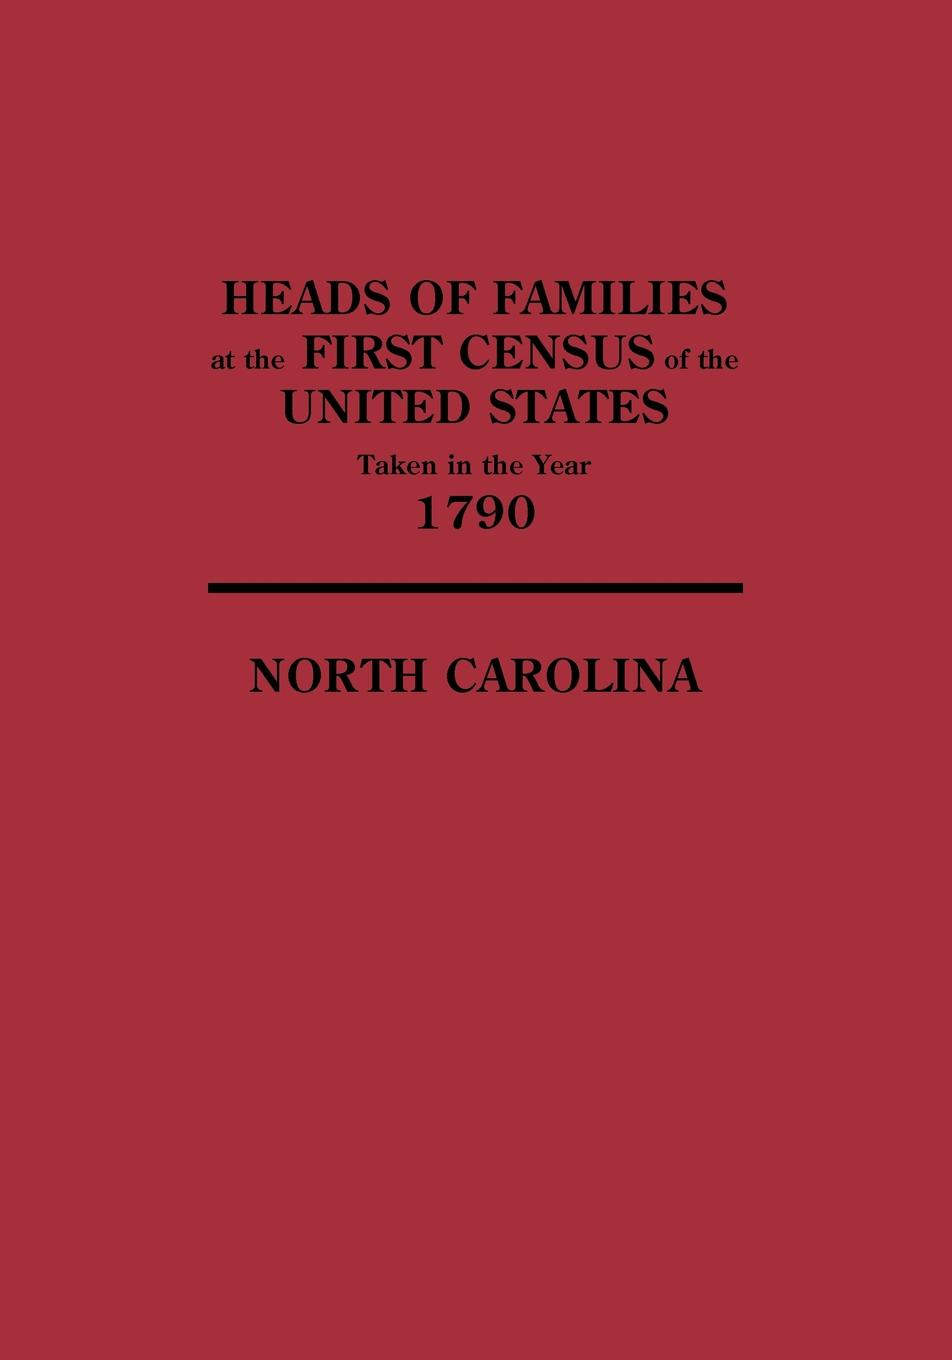 цена на United States, Bureau Of th U. S. Bureau of the Census, U. S. Bureau of the Census Heads of Families at the First Census of the United States Taken in the Year 1790. North Carolina